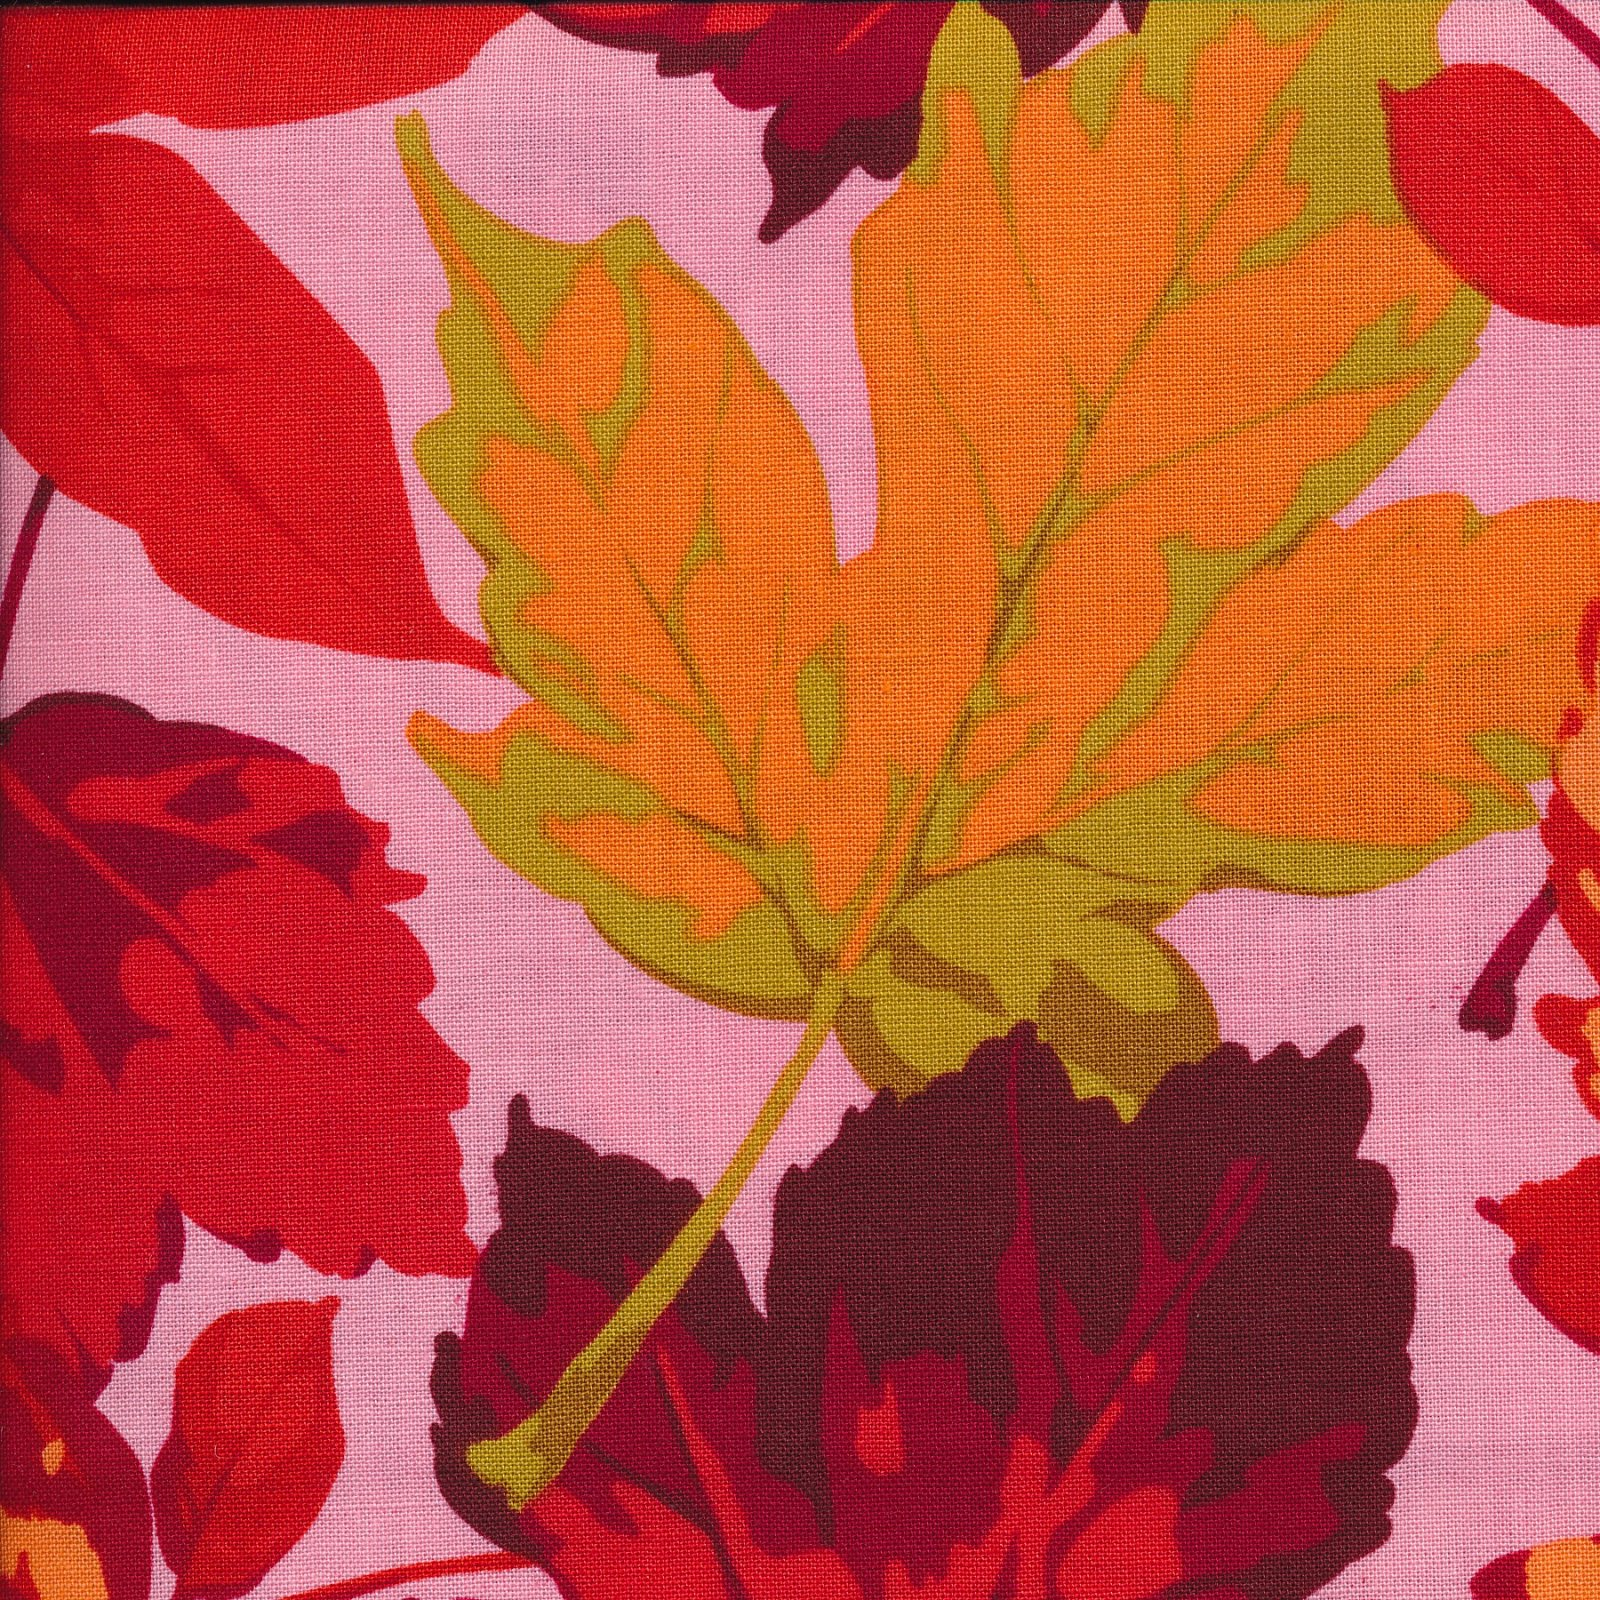 Autumn Medley: Maples in Bright